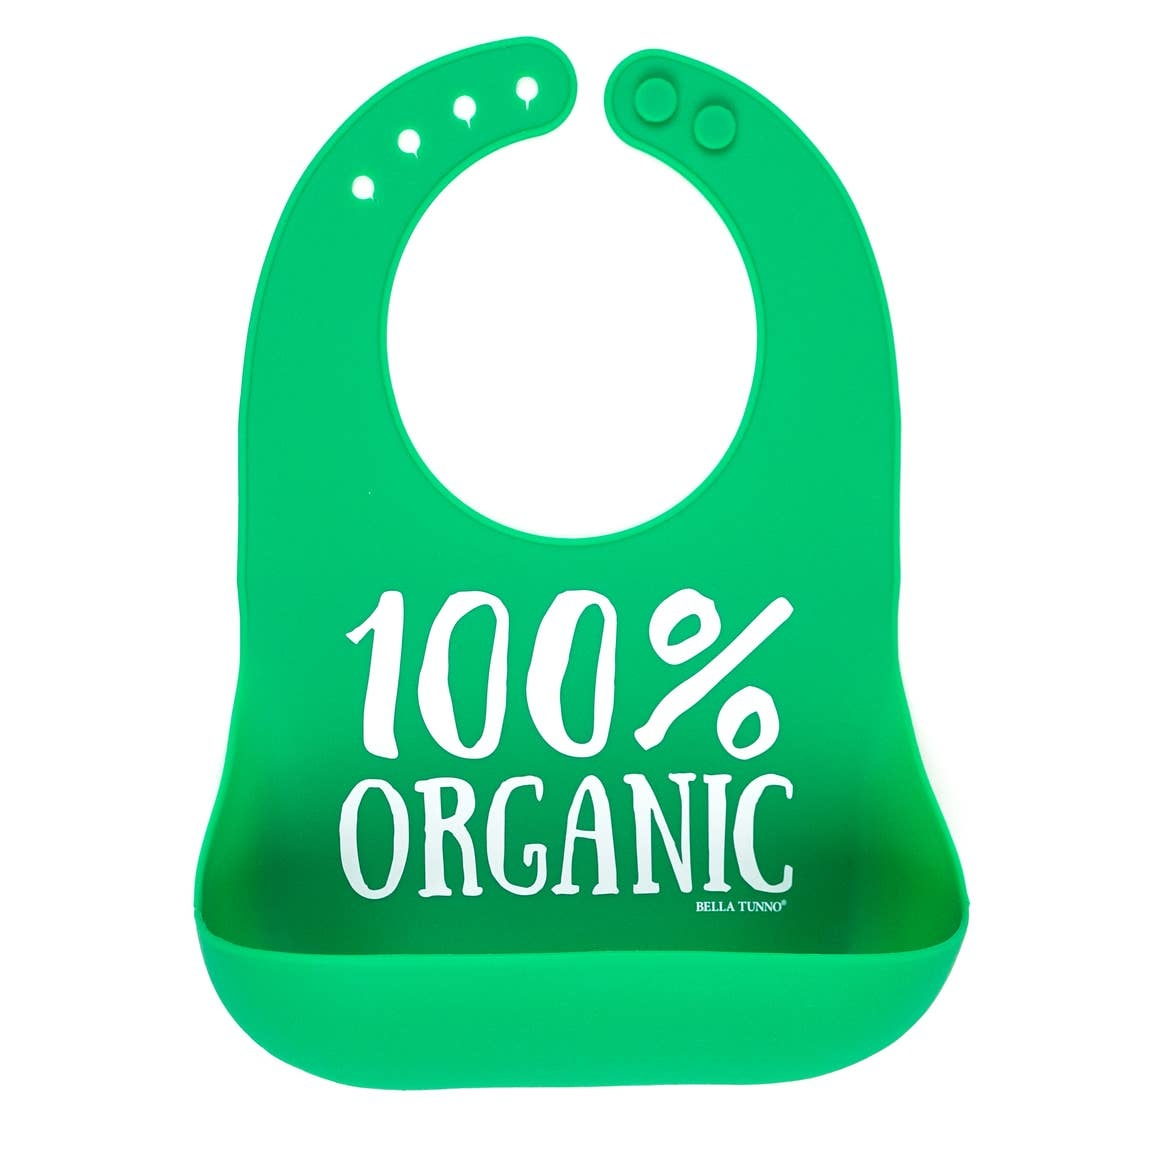 Bella Tunno Wonder Bib, Green Organic